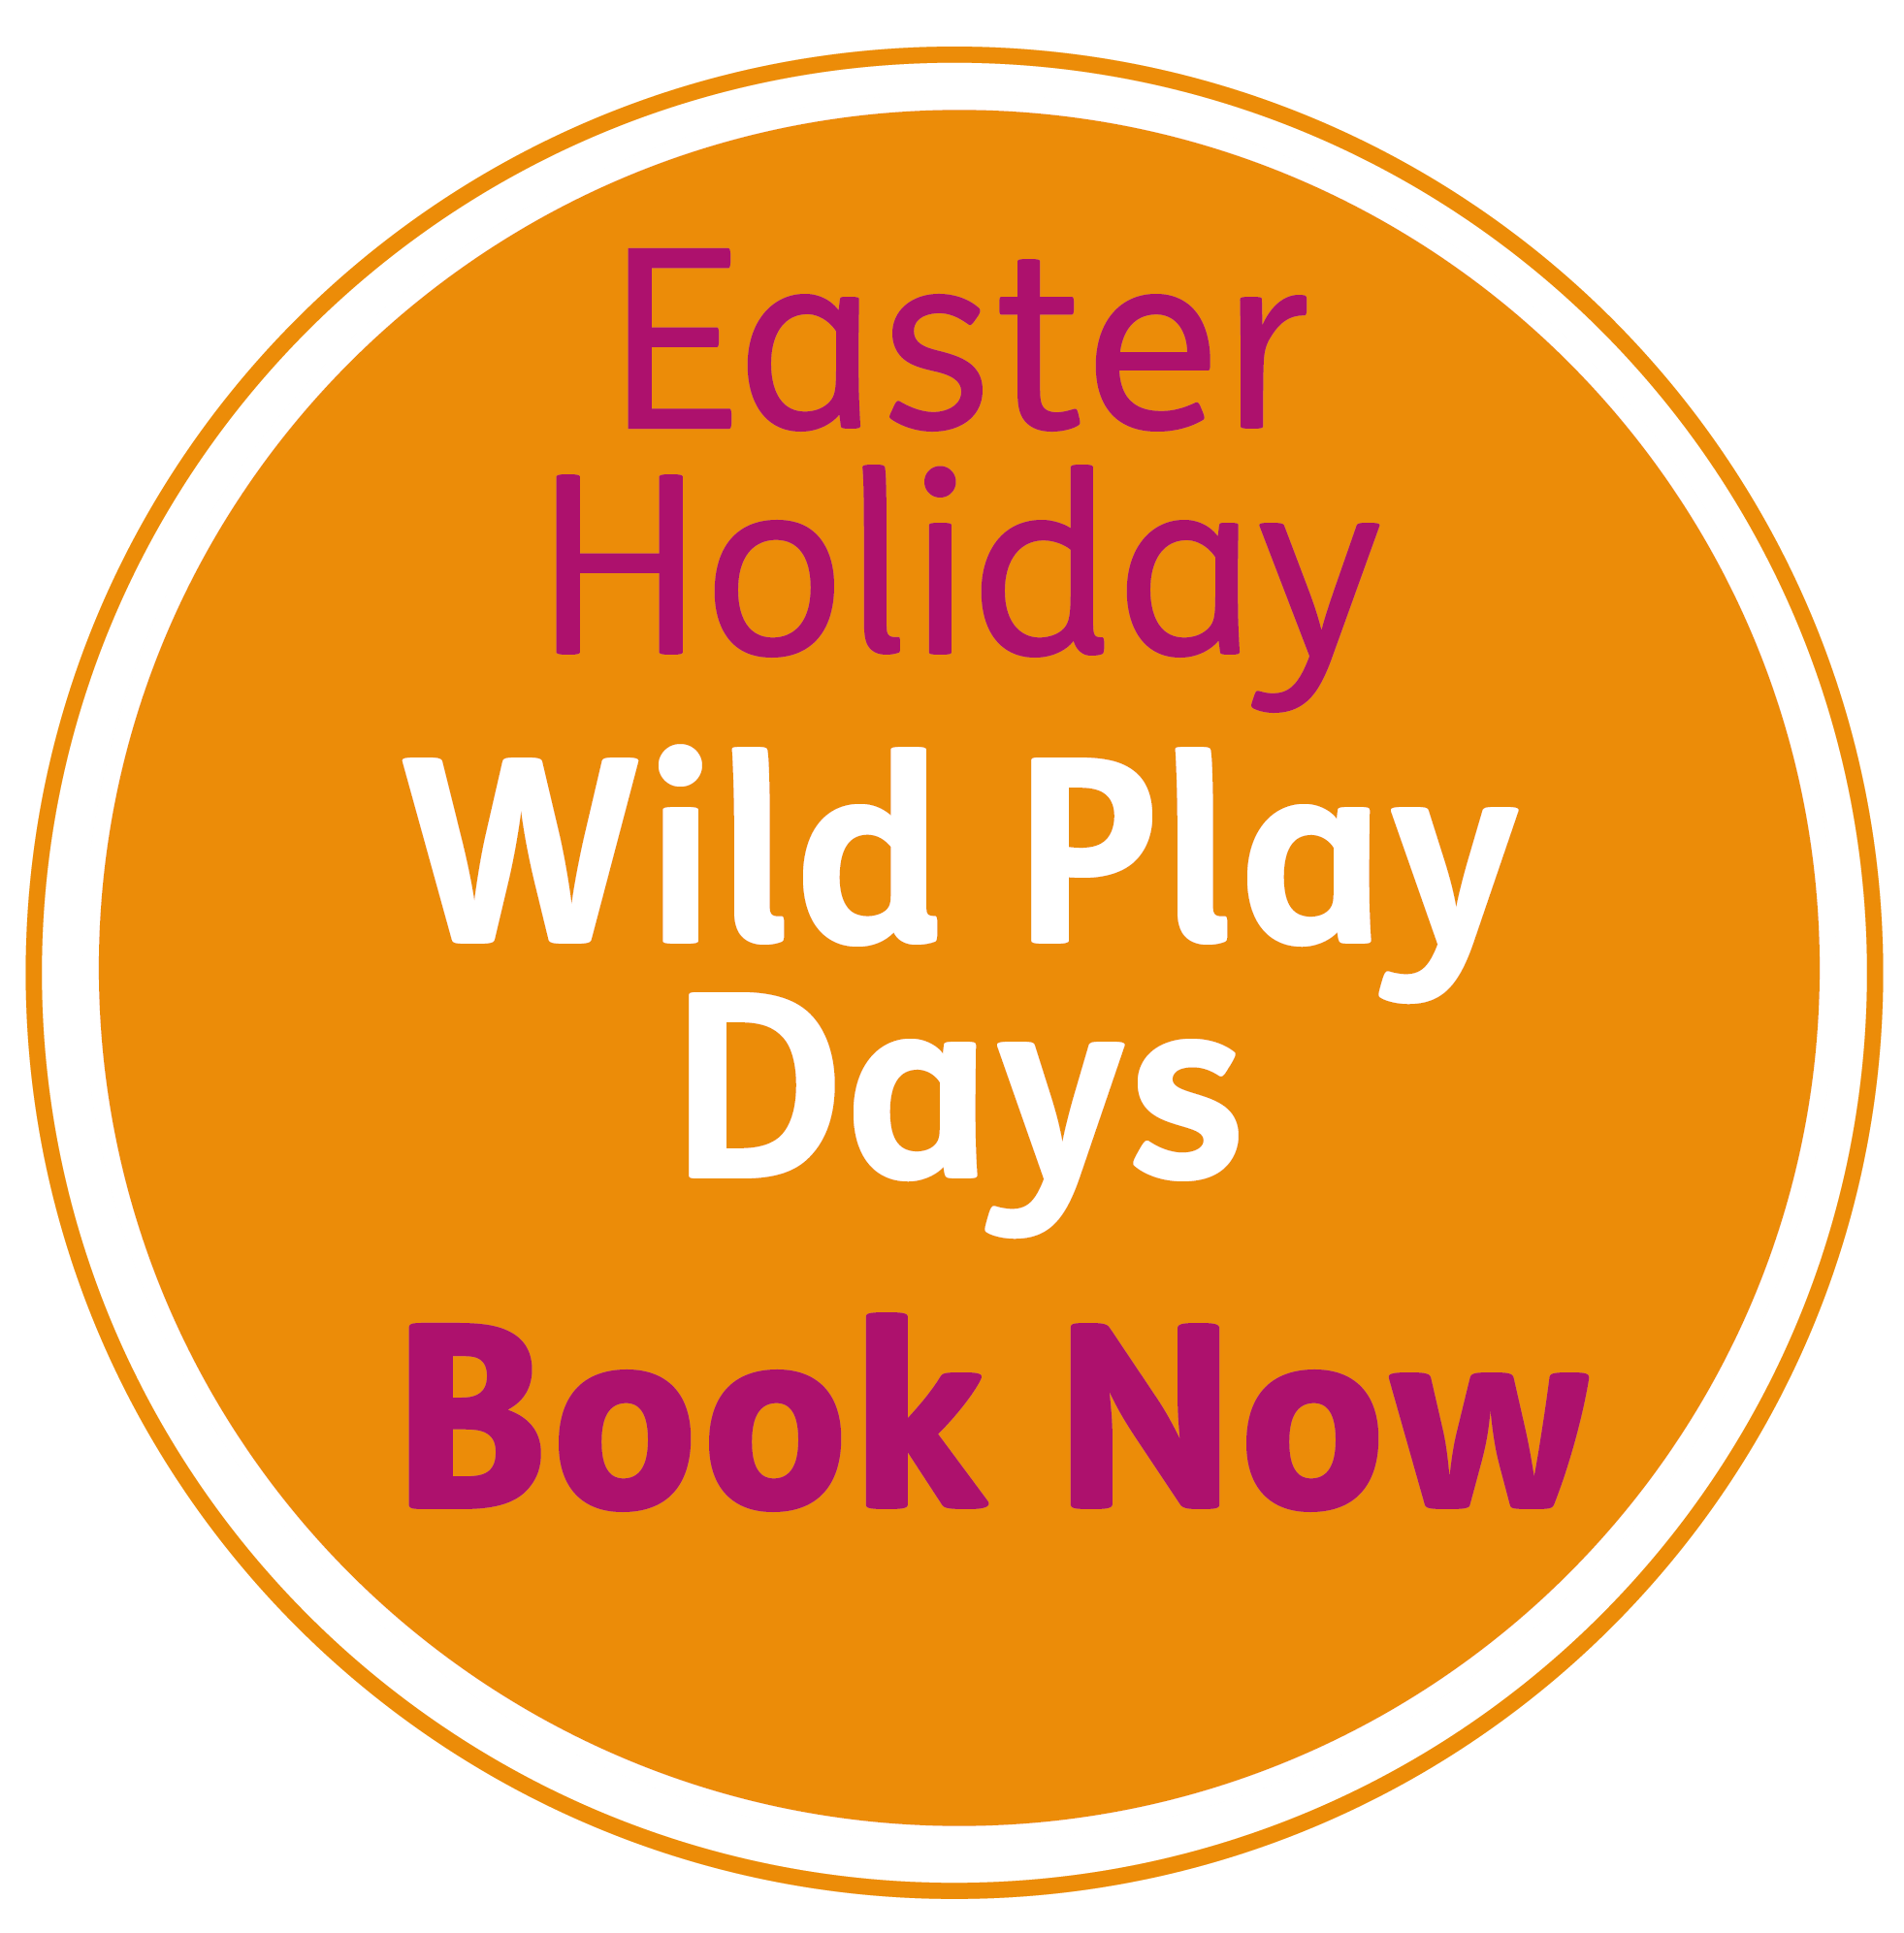 WPD Easter Holidays Badge book now - Children's Classes & Courses